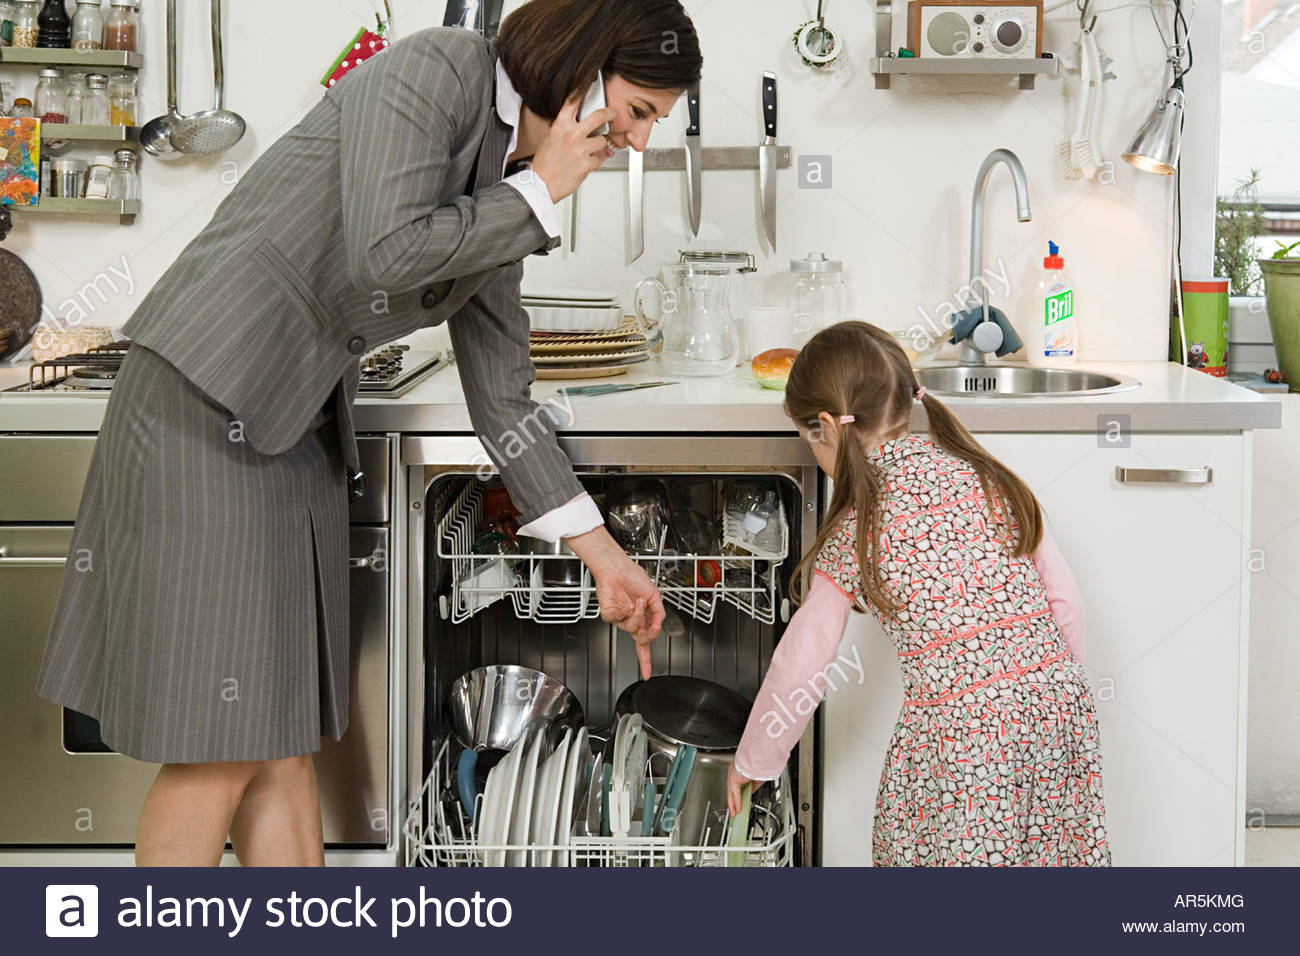 Daughter helping mother with filling dishwasher - Stock Image